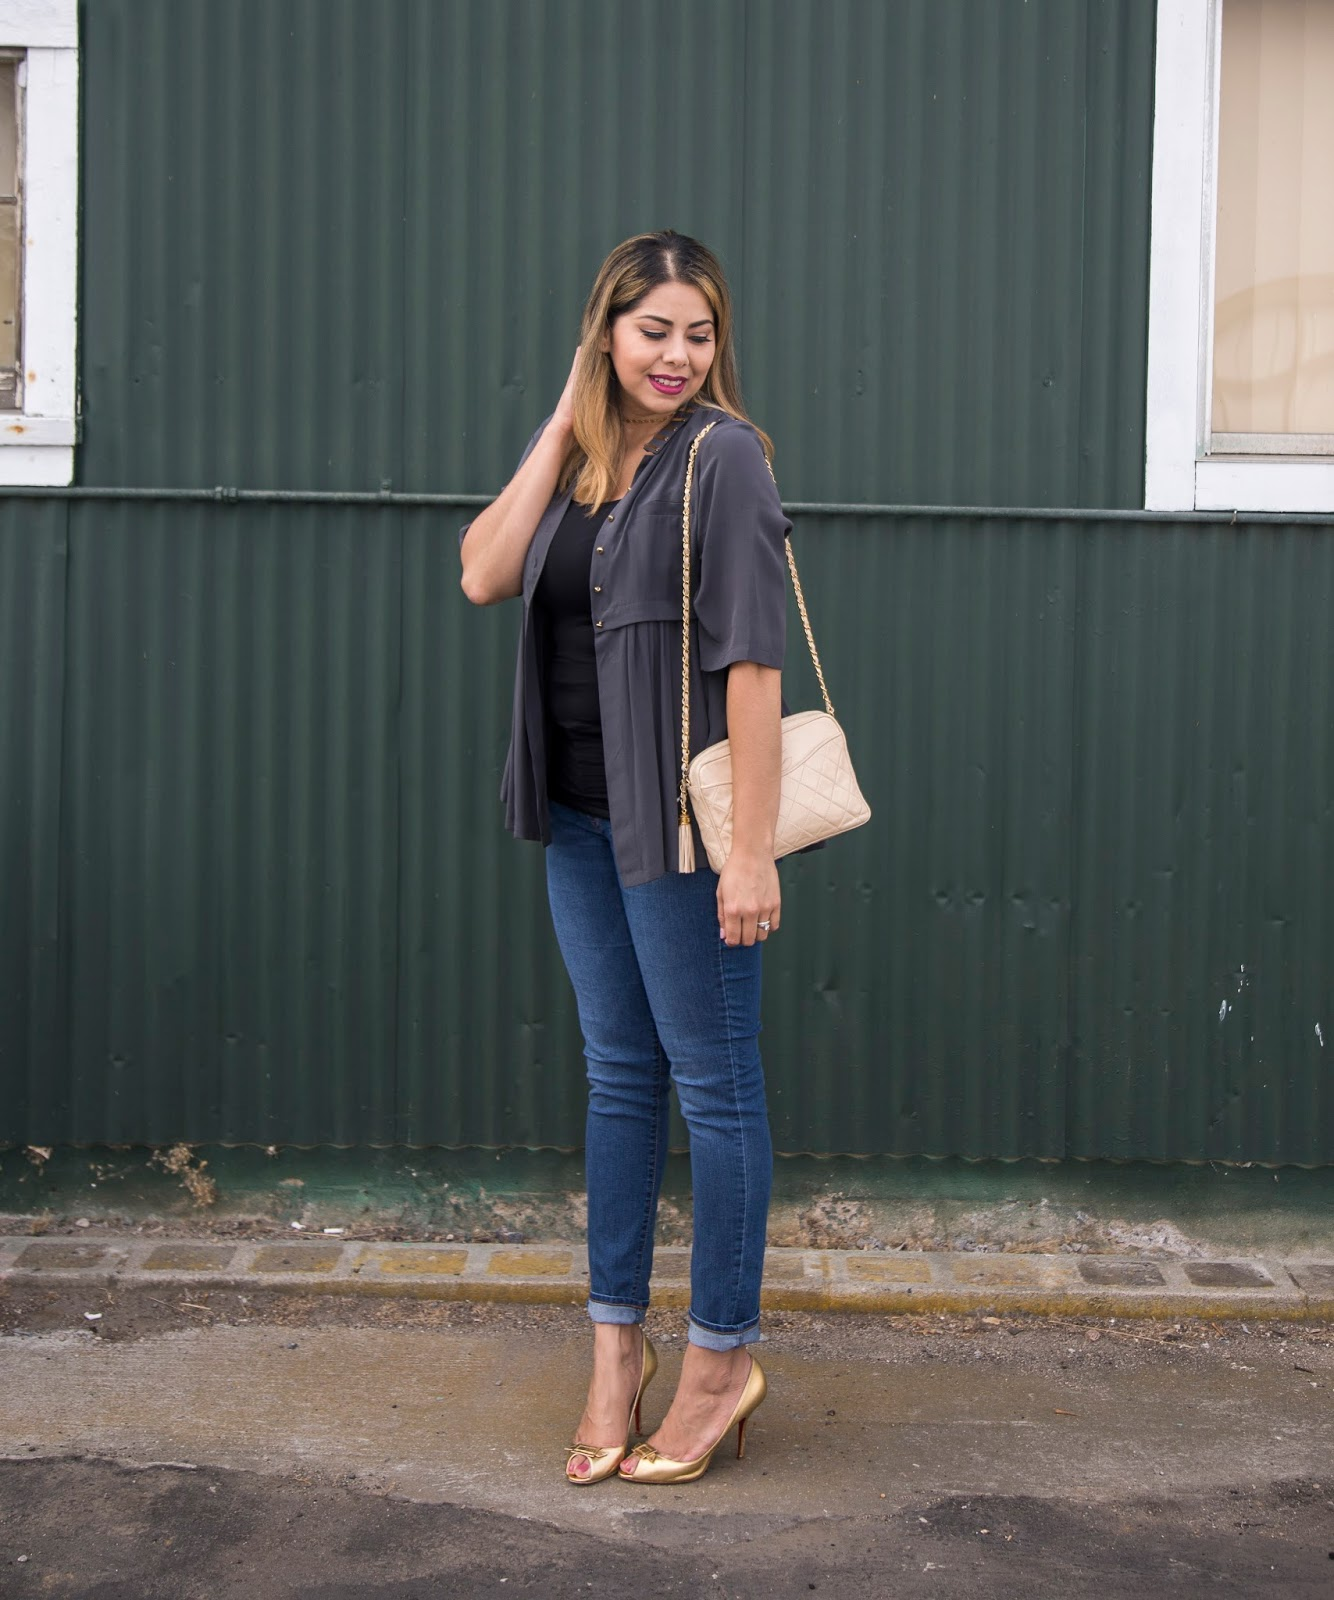 gold christian louboutin heels, san diego fashion blogger, san diego consigment store, casual yet stylish outfit, skinny jean outfit